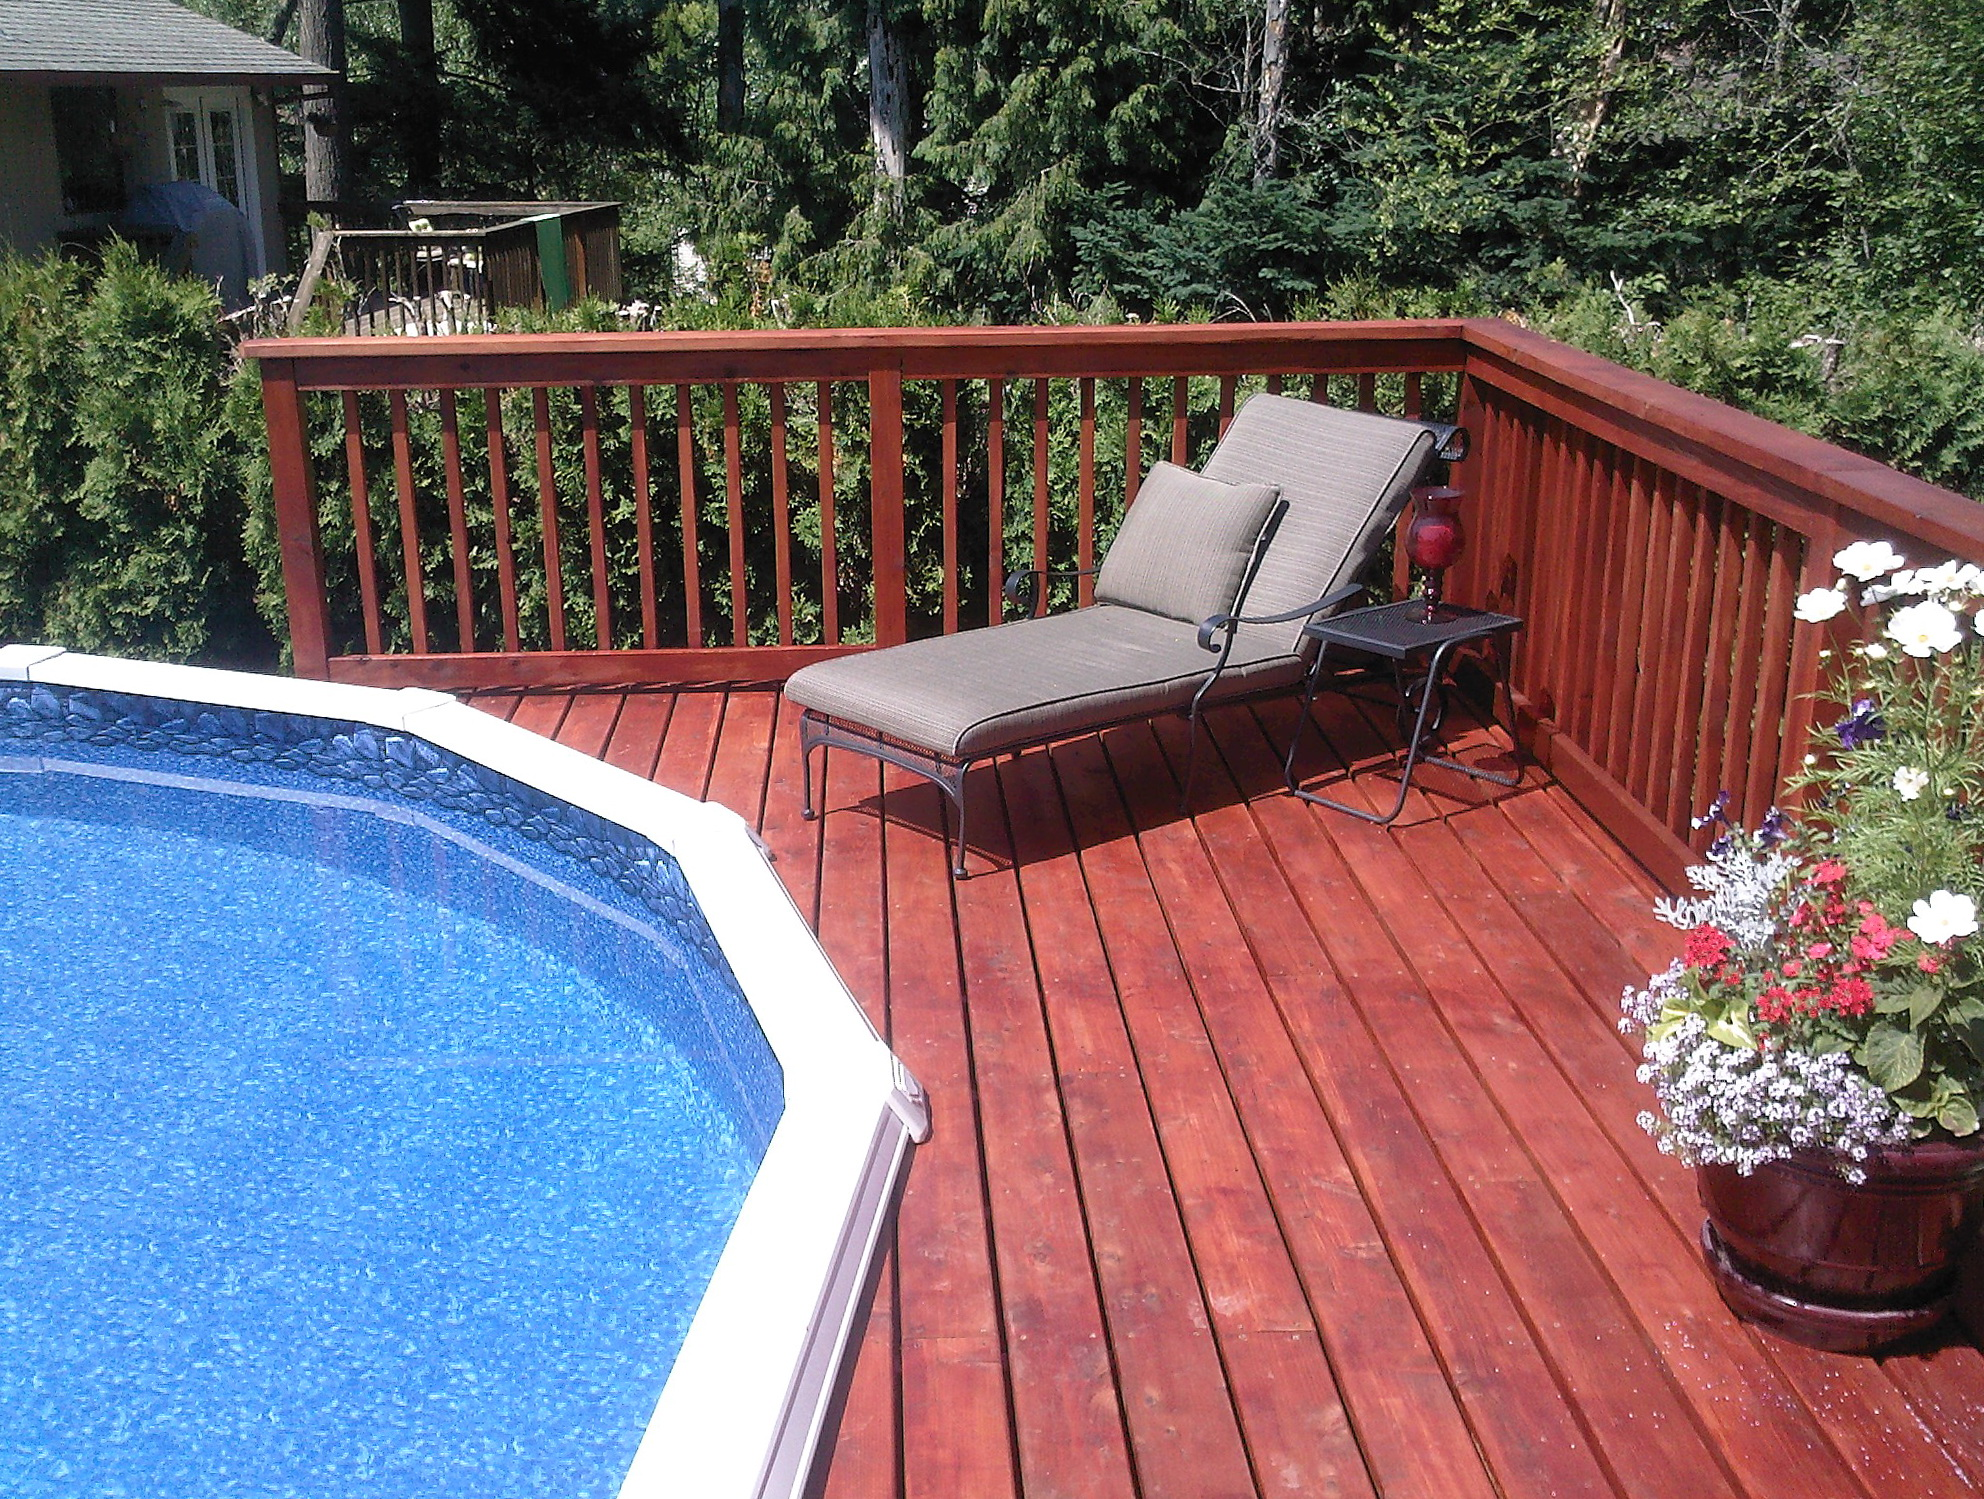 Cheap deck ideas for above ground pools home design ideas for Above ground pool ideas on a budget